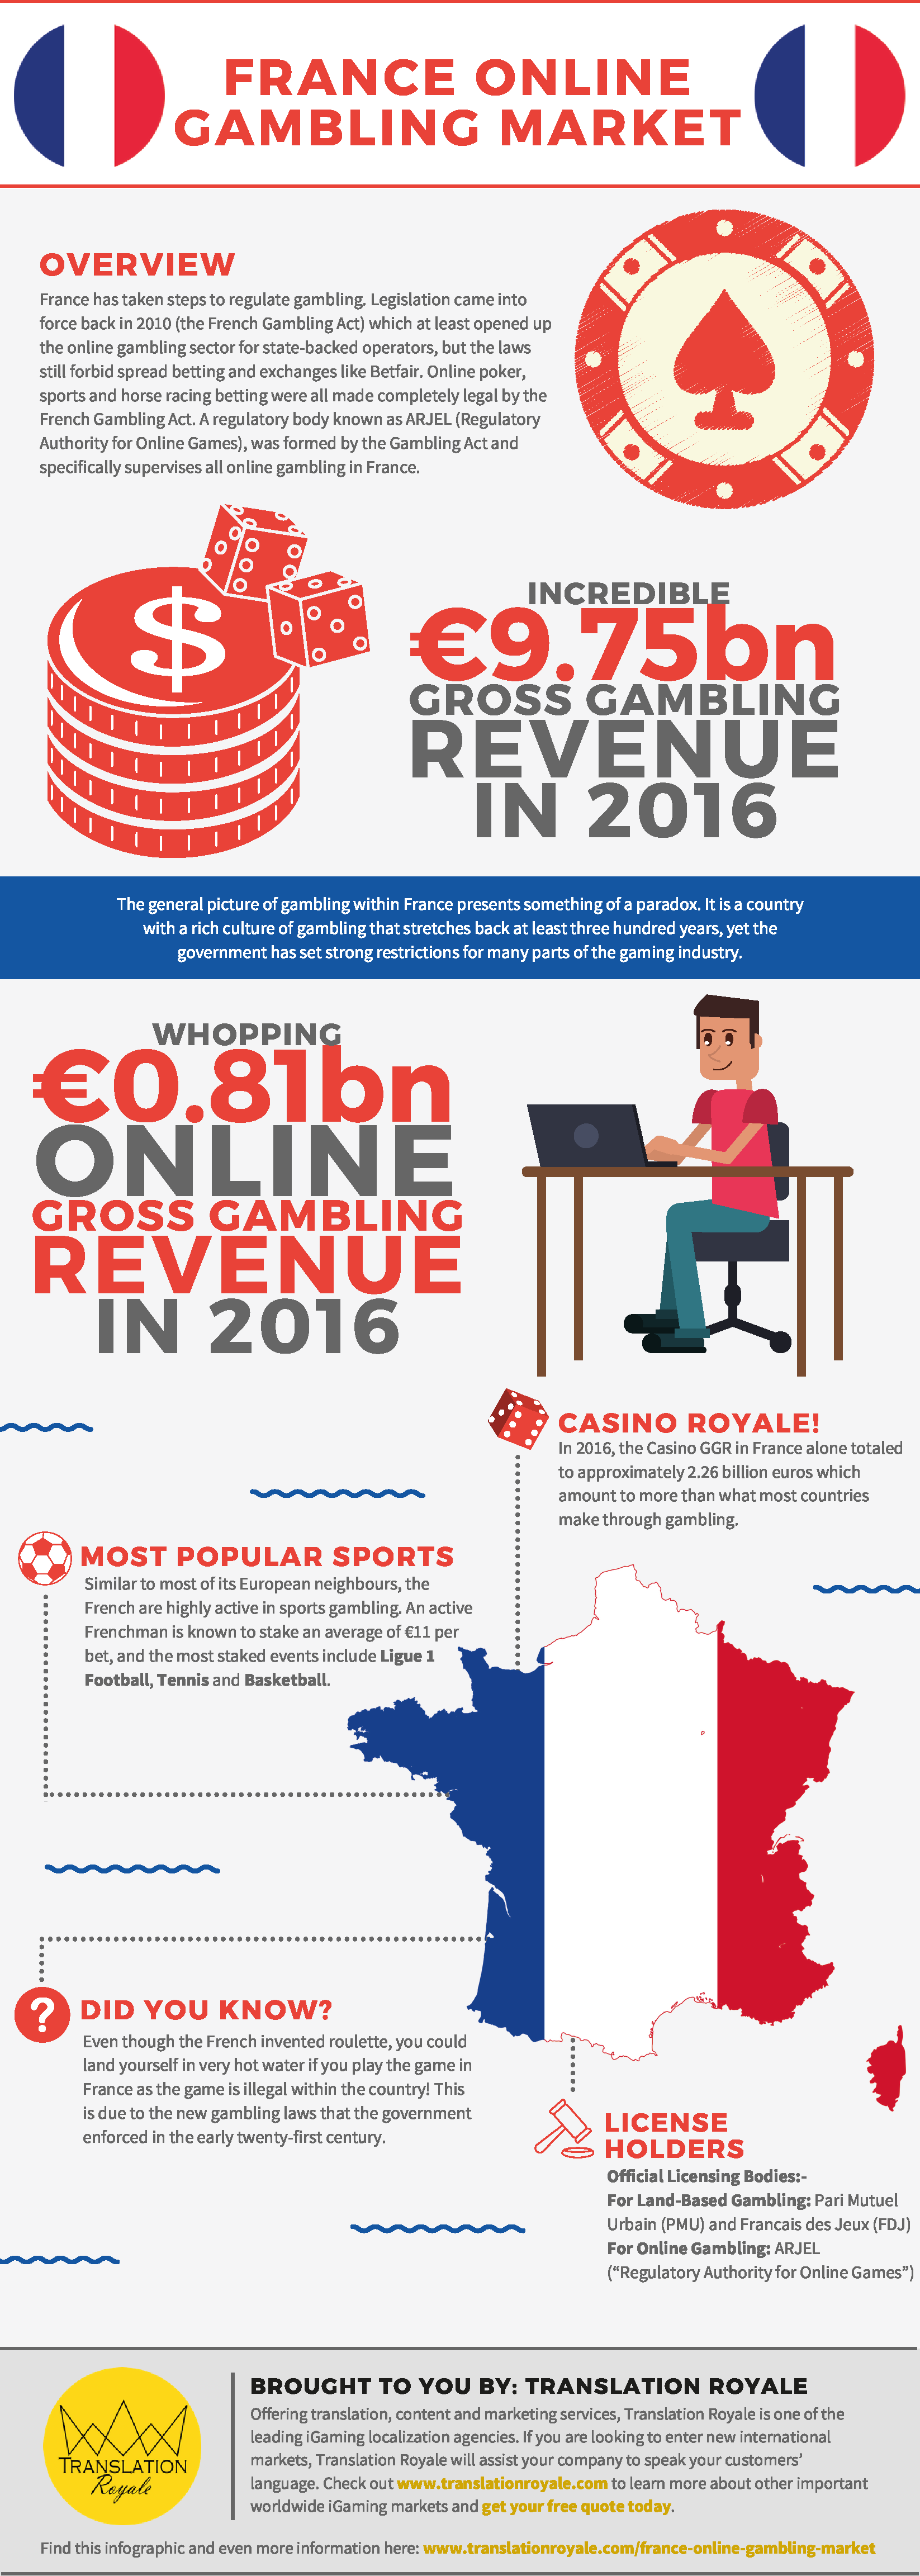 France Online Gambling Market Infographic by Translation Royale